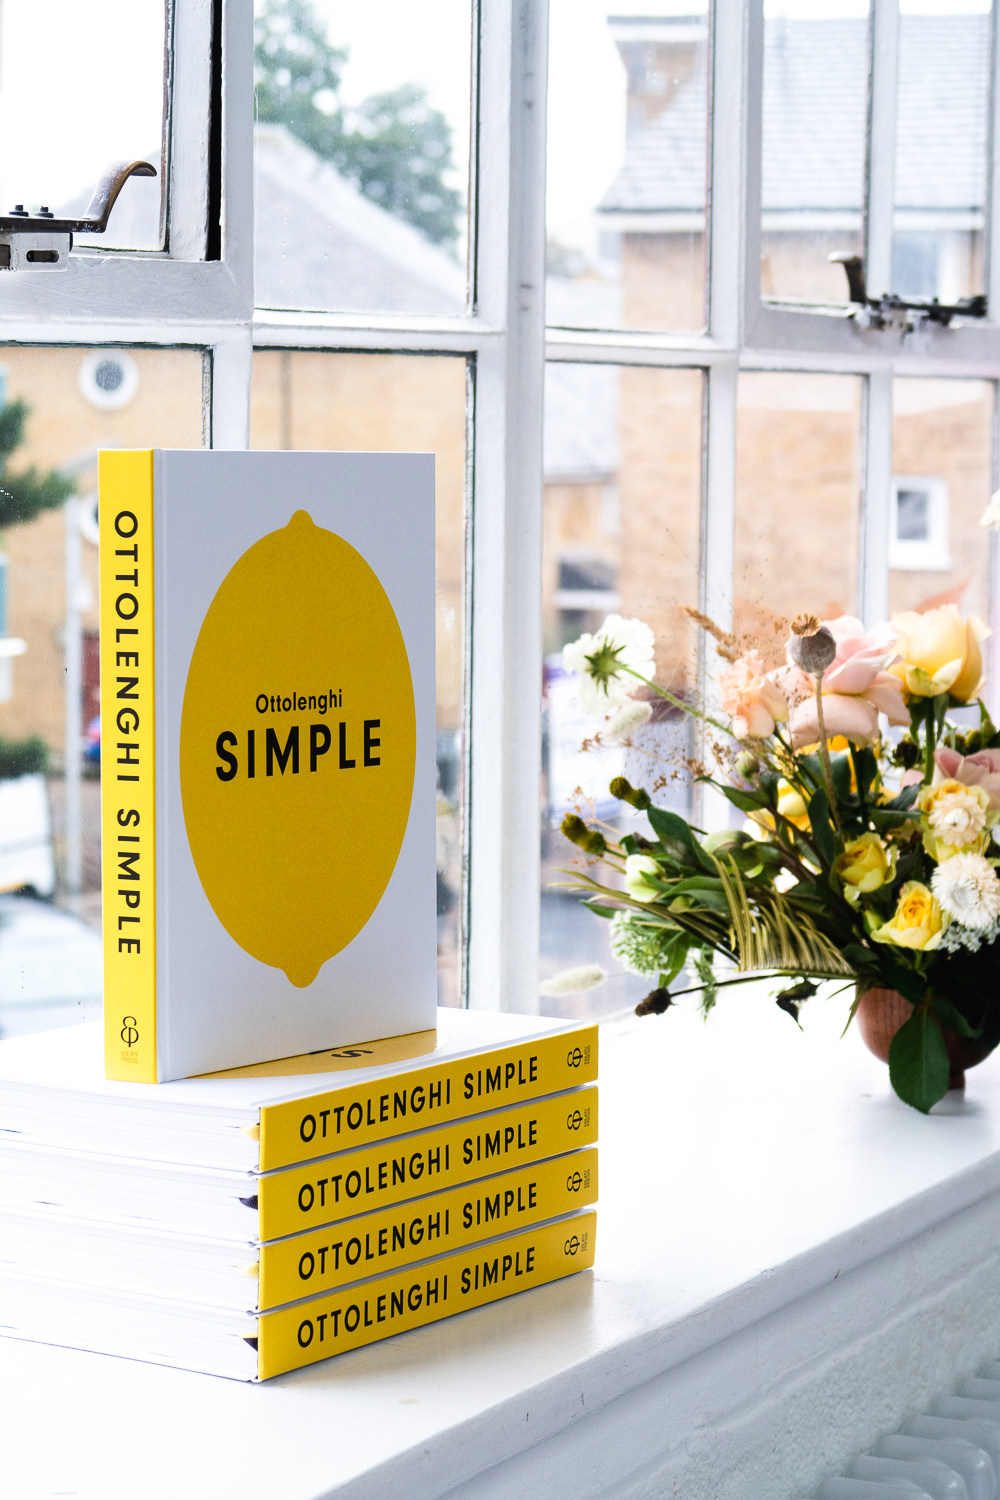 Cookbook Club lunch at Rye London for the launch of Yotam Ottolenghi new book Simple